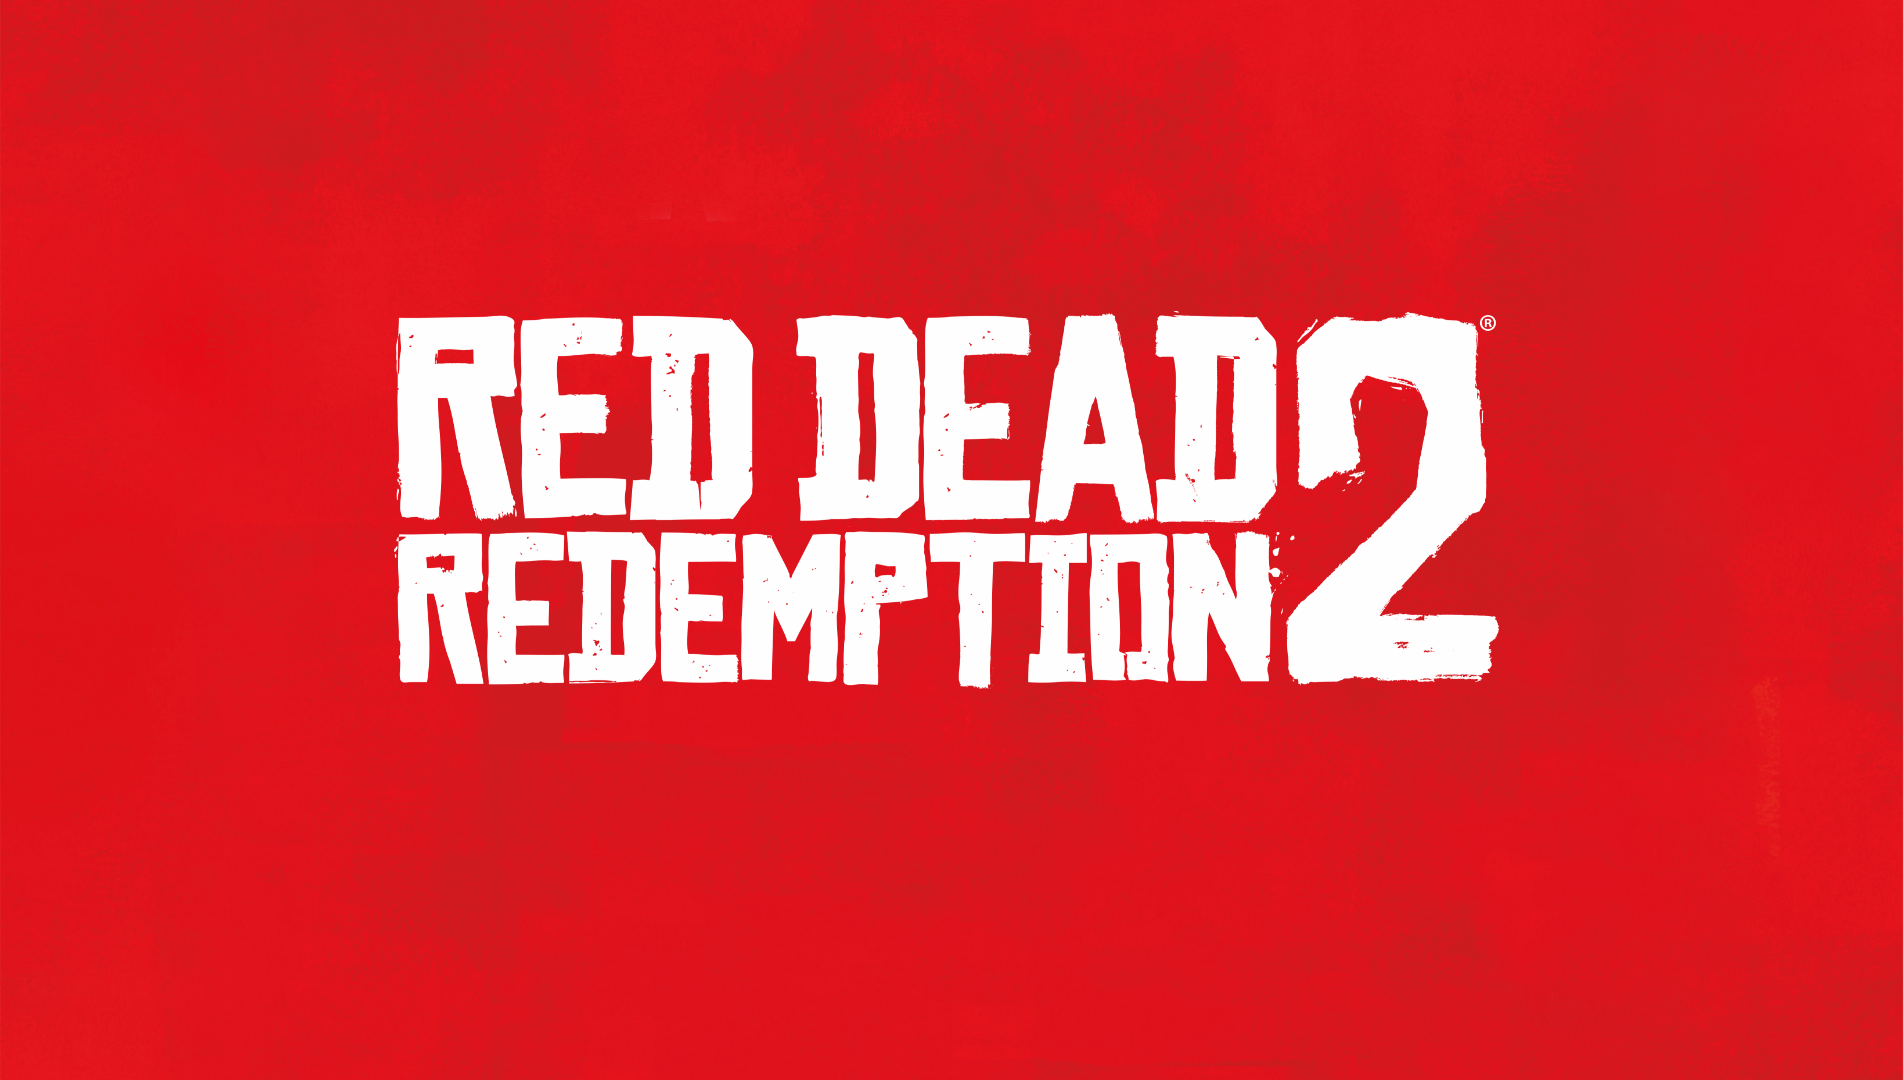 Run to See the Red Dead Redemption 2 Trailer